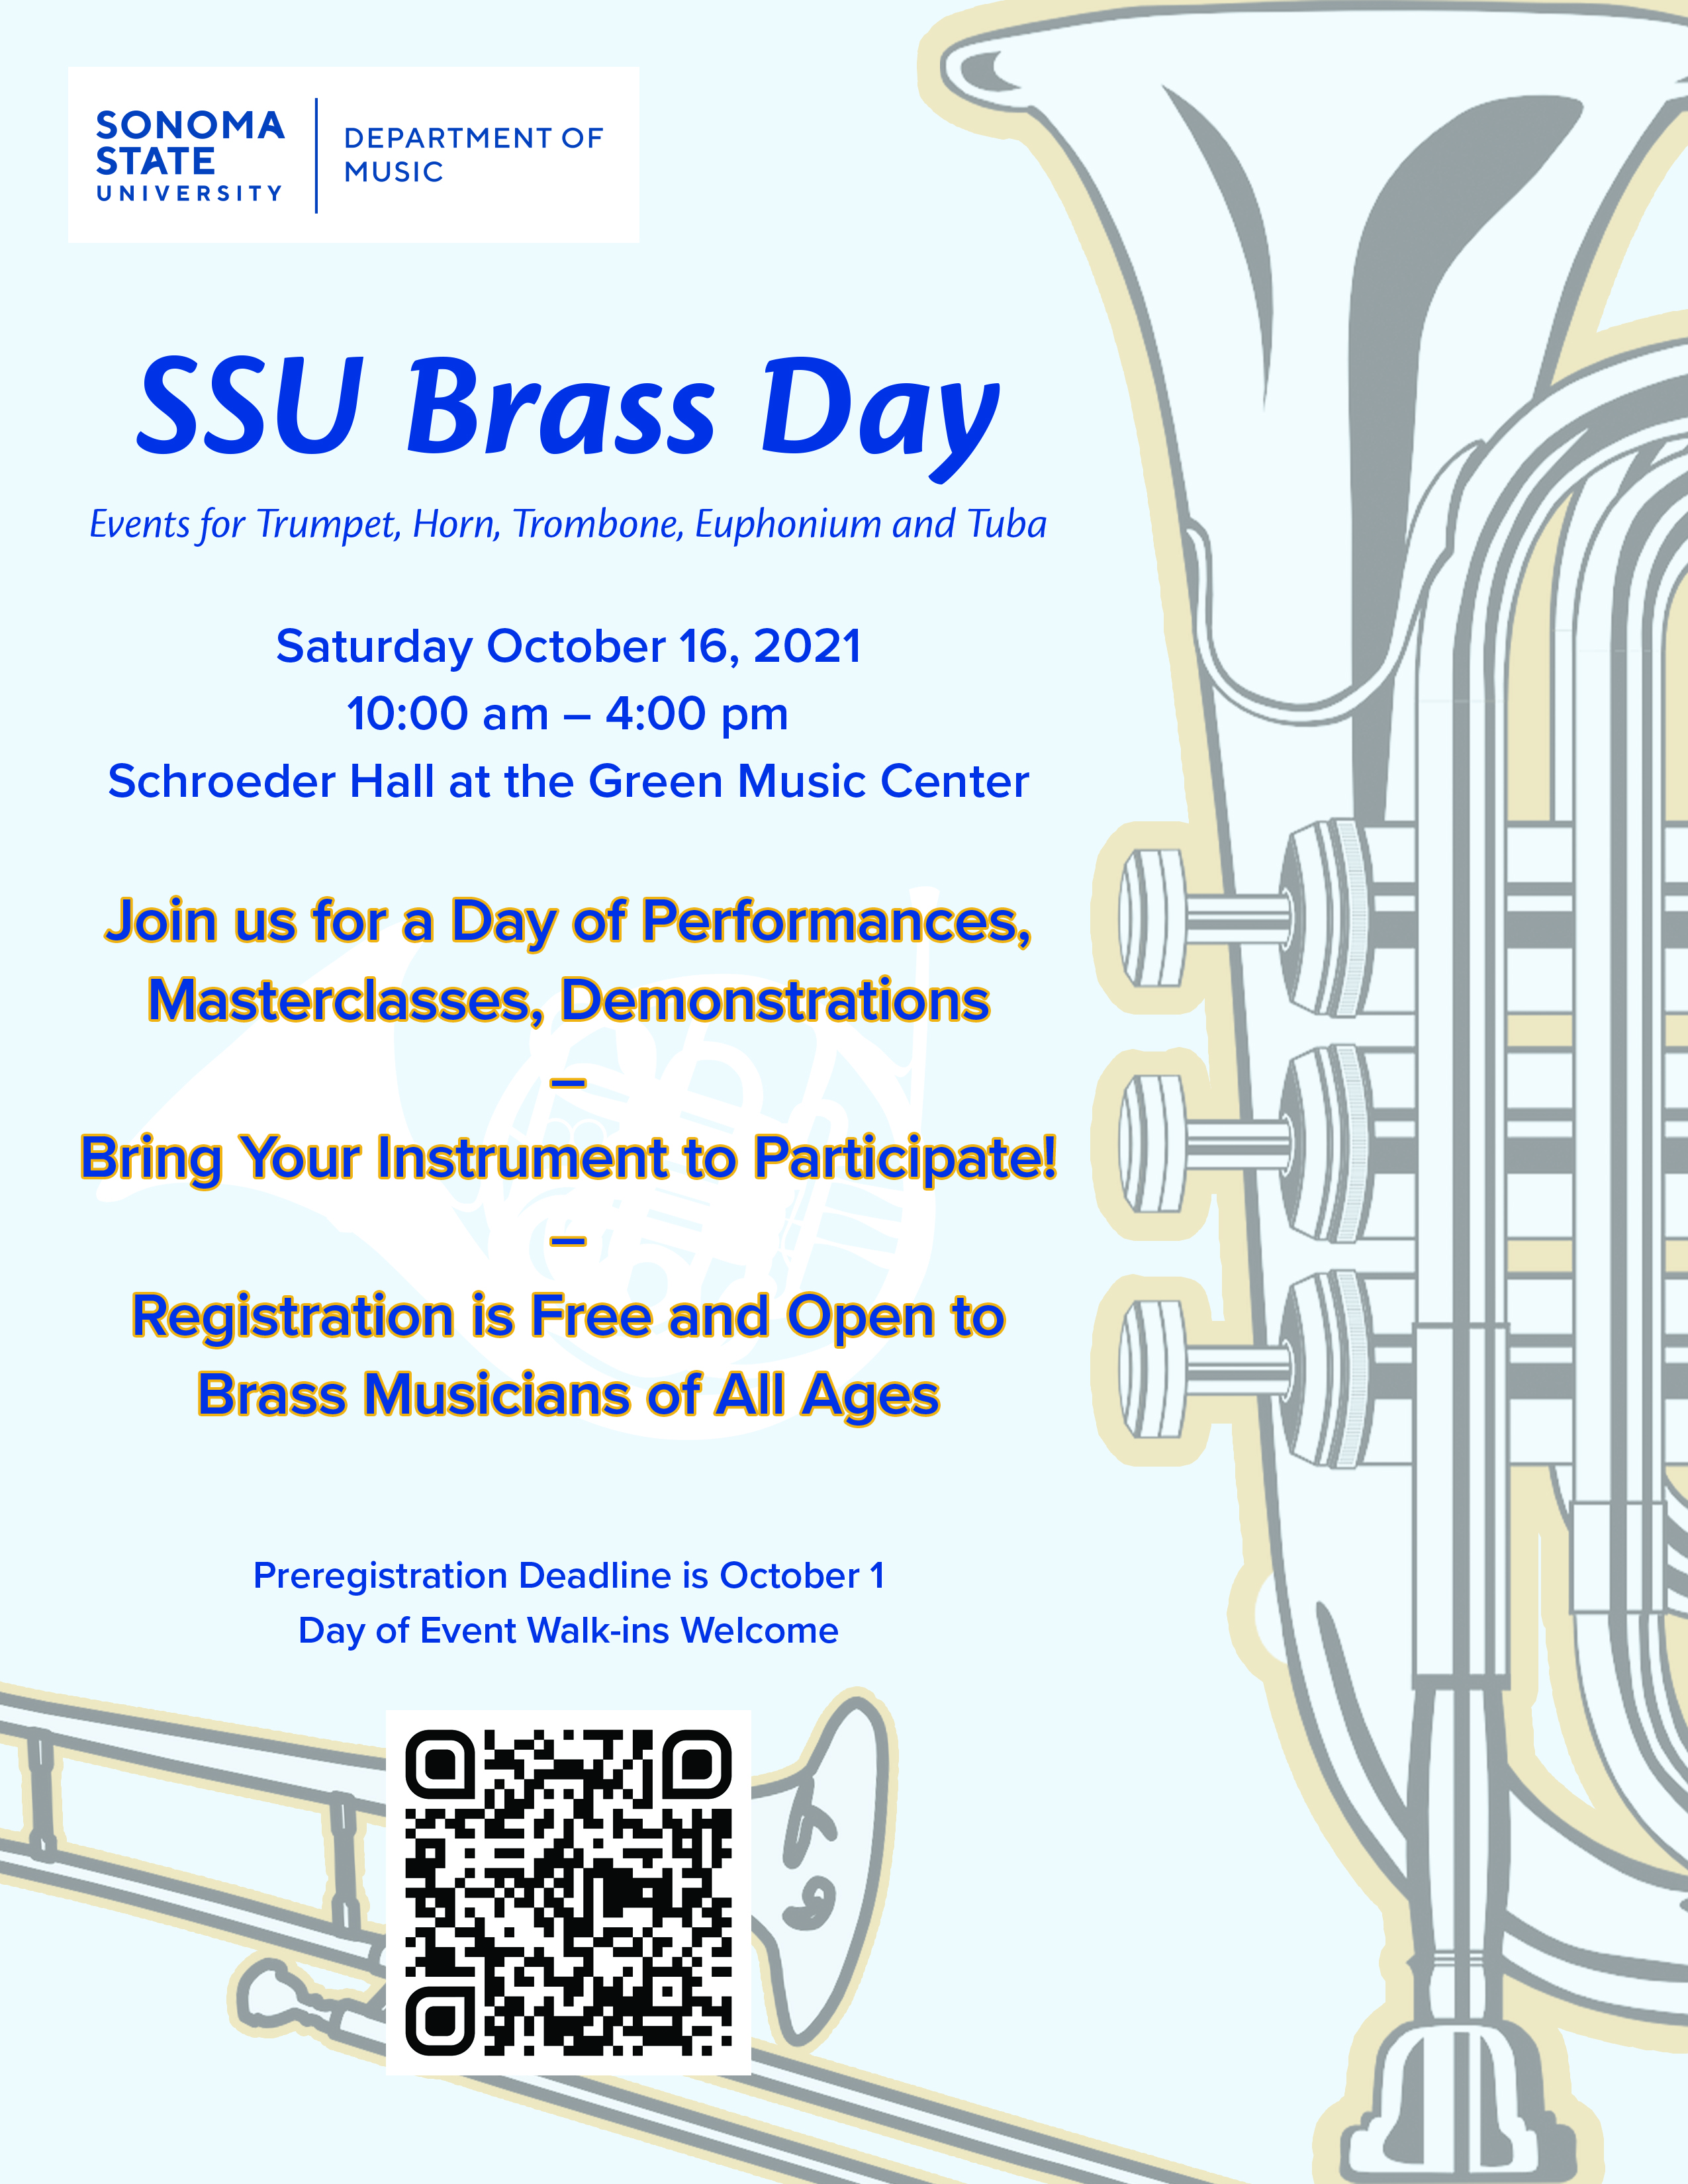 The flyer for the 2021 SSU Brass Day event